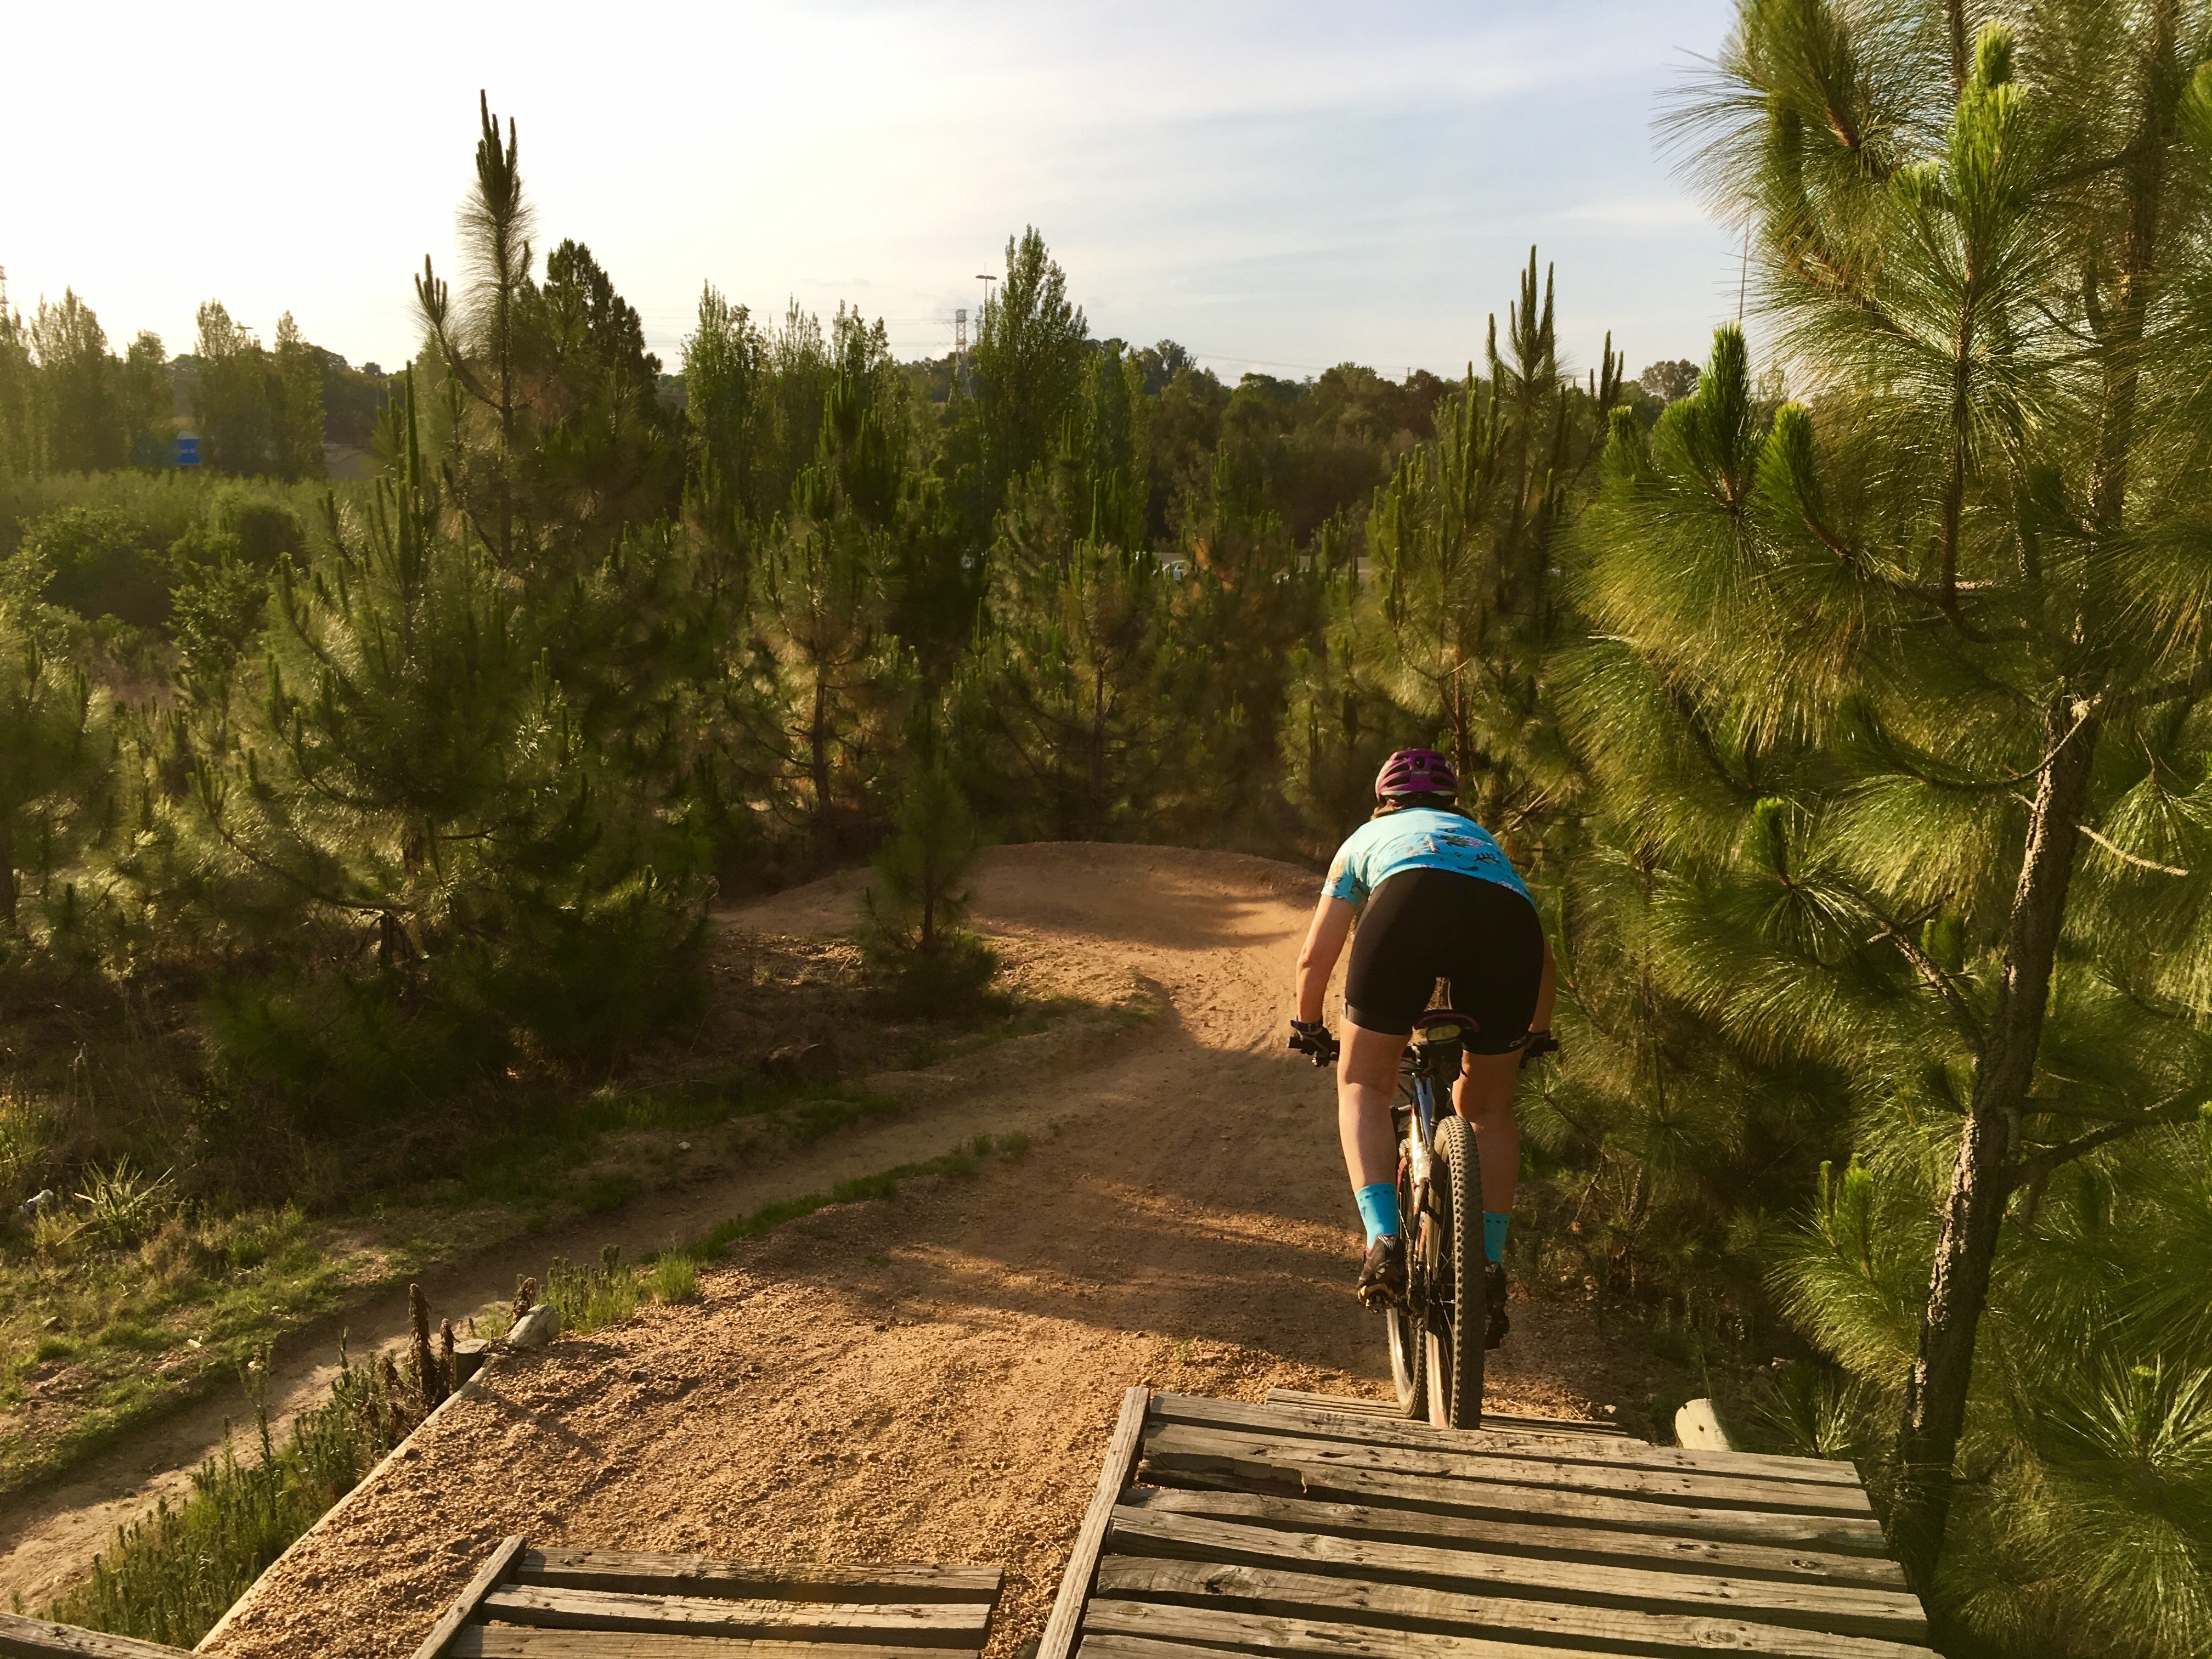 MONTHLY STRAVA CHALLENGE FOR PwC BIKE PARK